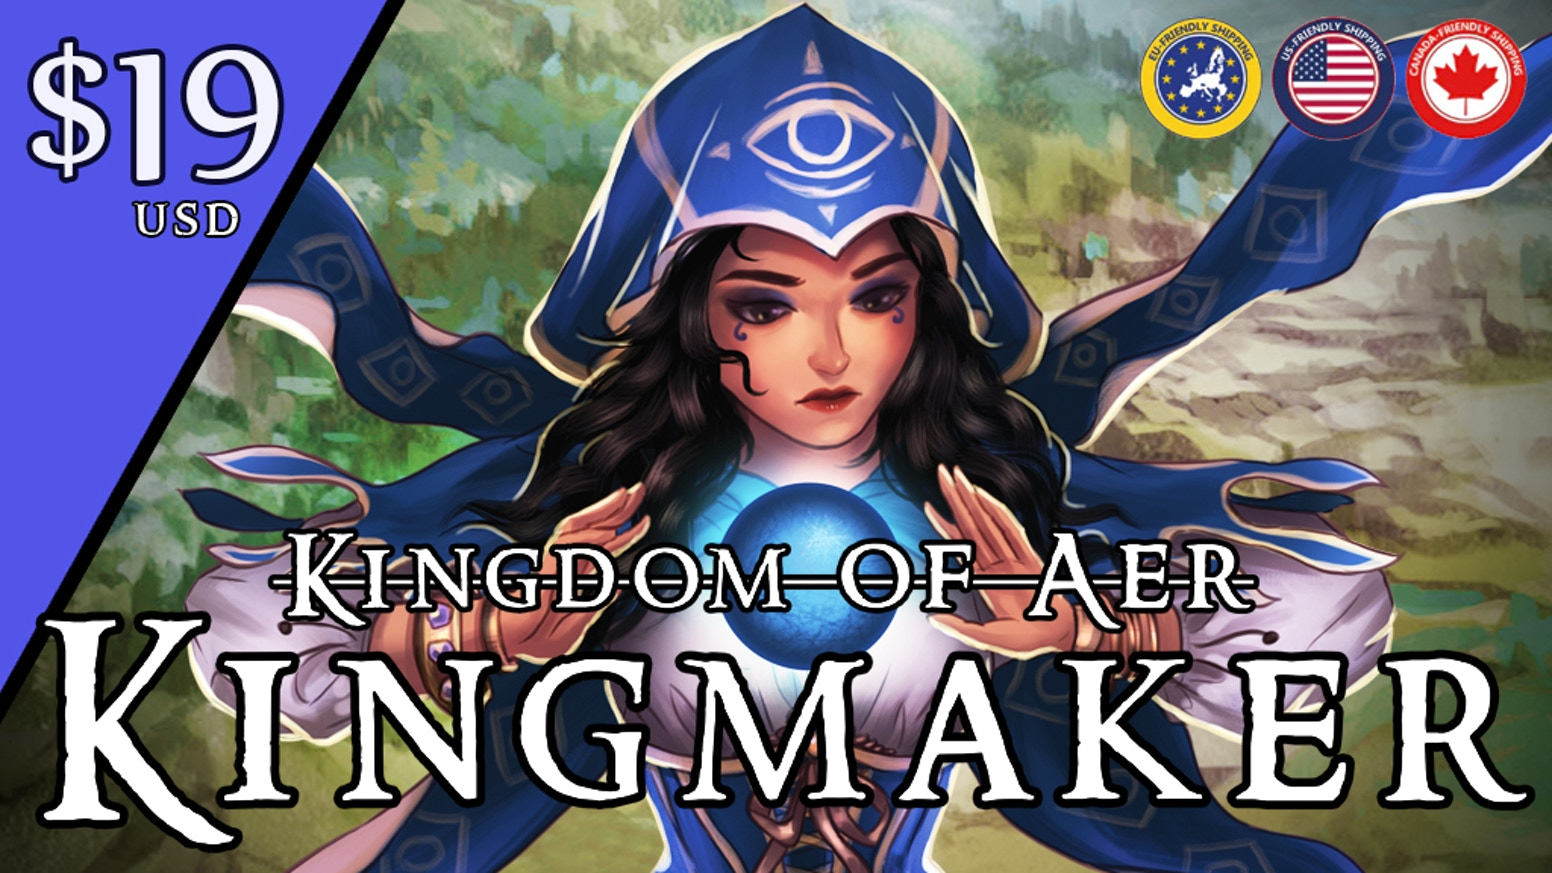 15 minutes of assassinating royalty, betraying allies, and surviving the mayhem to win the crown for your house! 2-5 players.